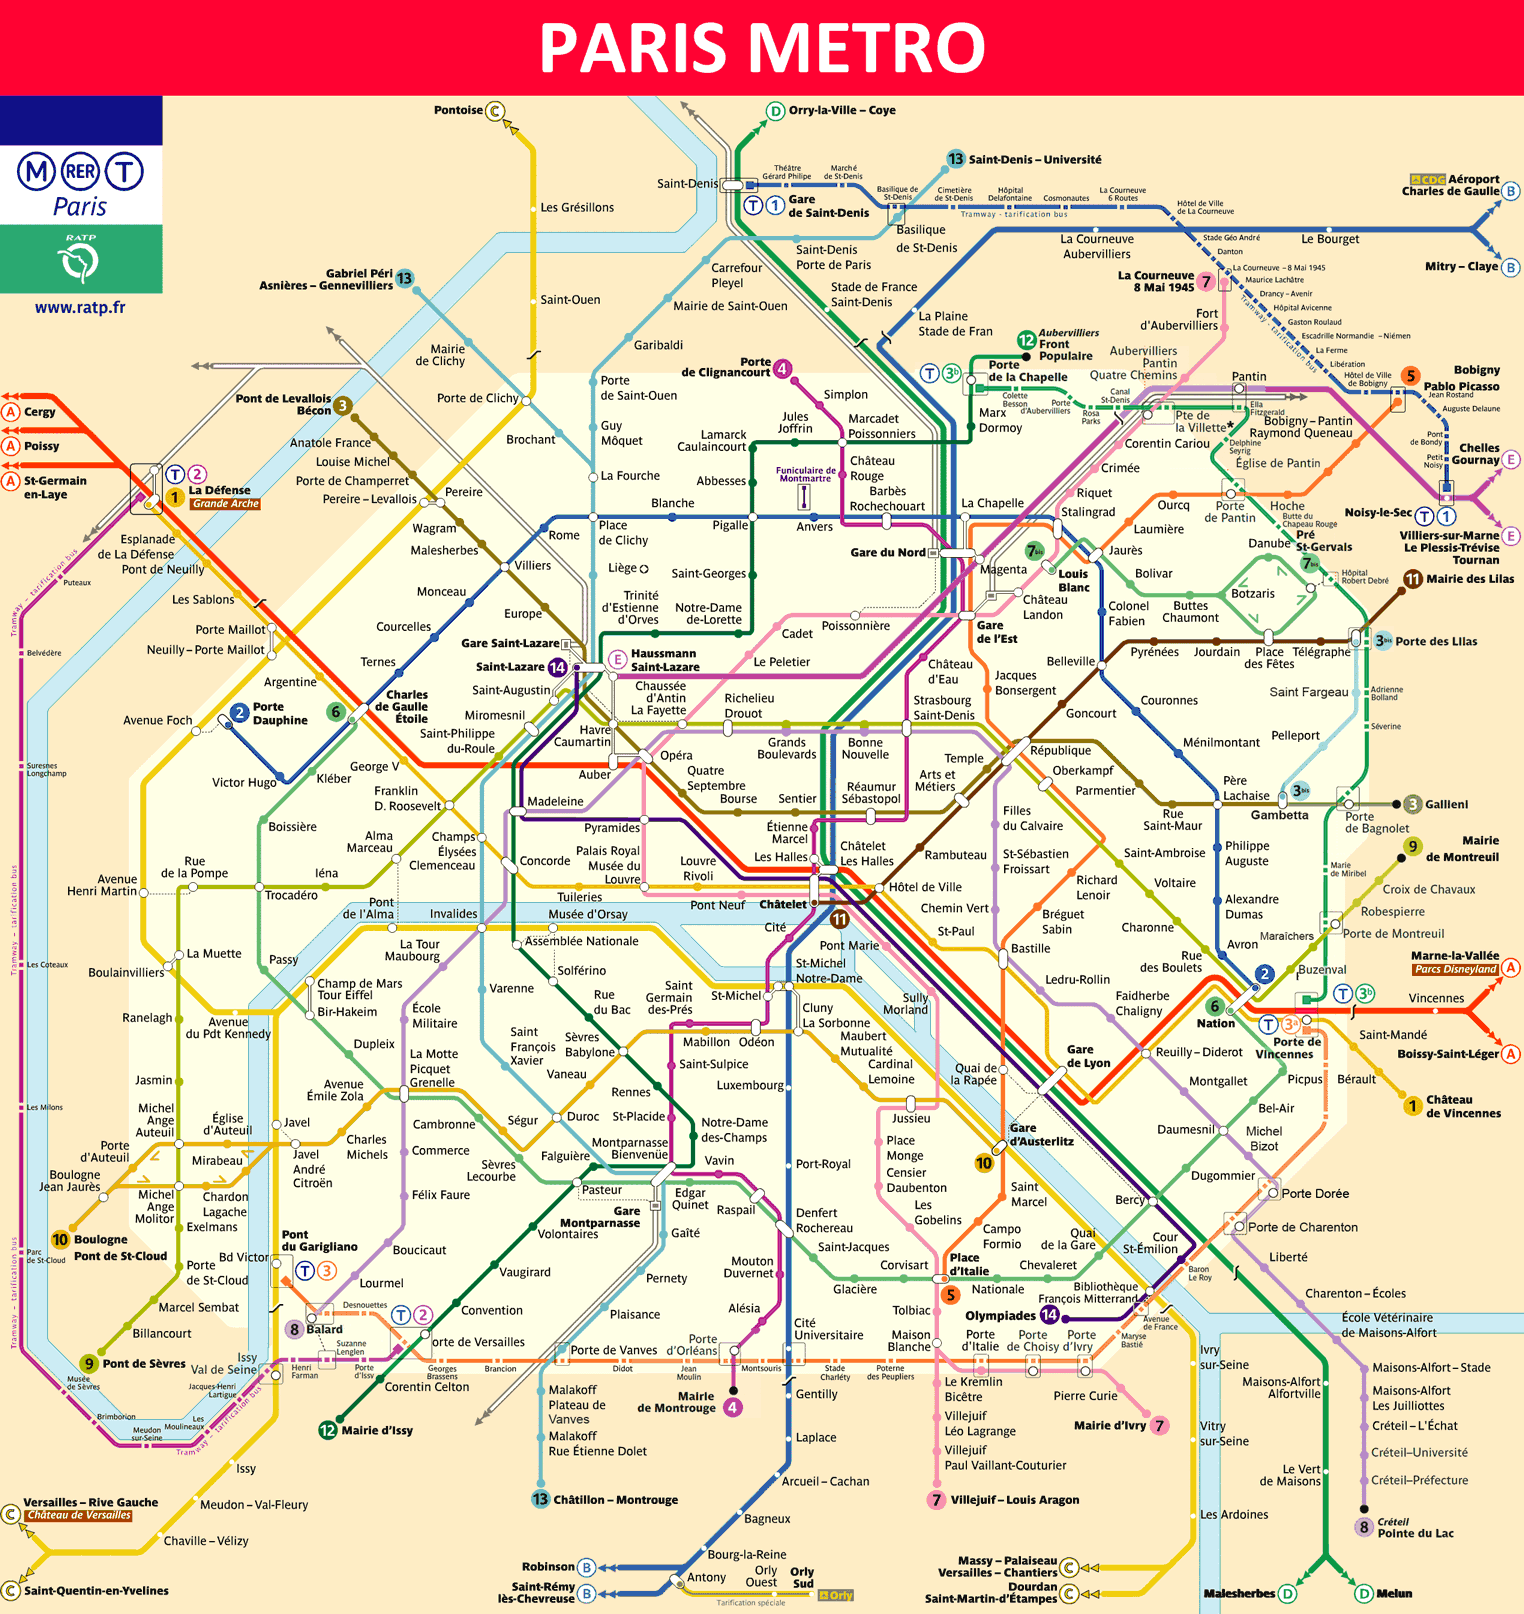 Connu Paris Metro - Maps, Timetables, Tourist Information MR71